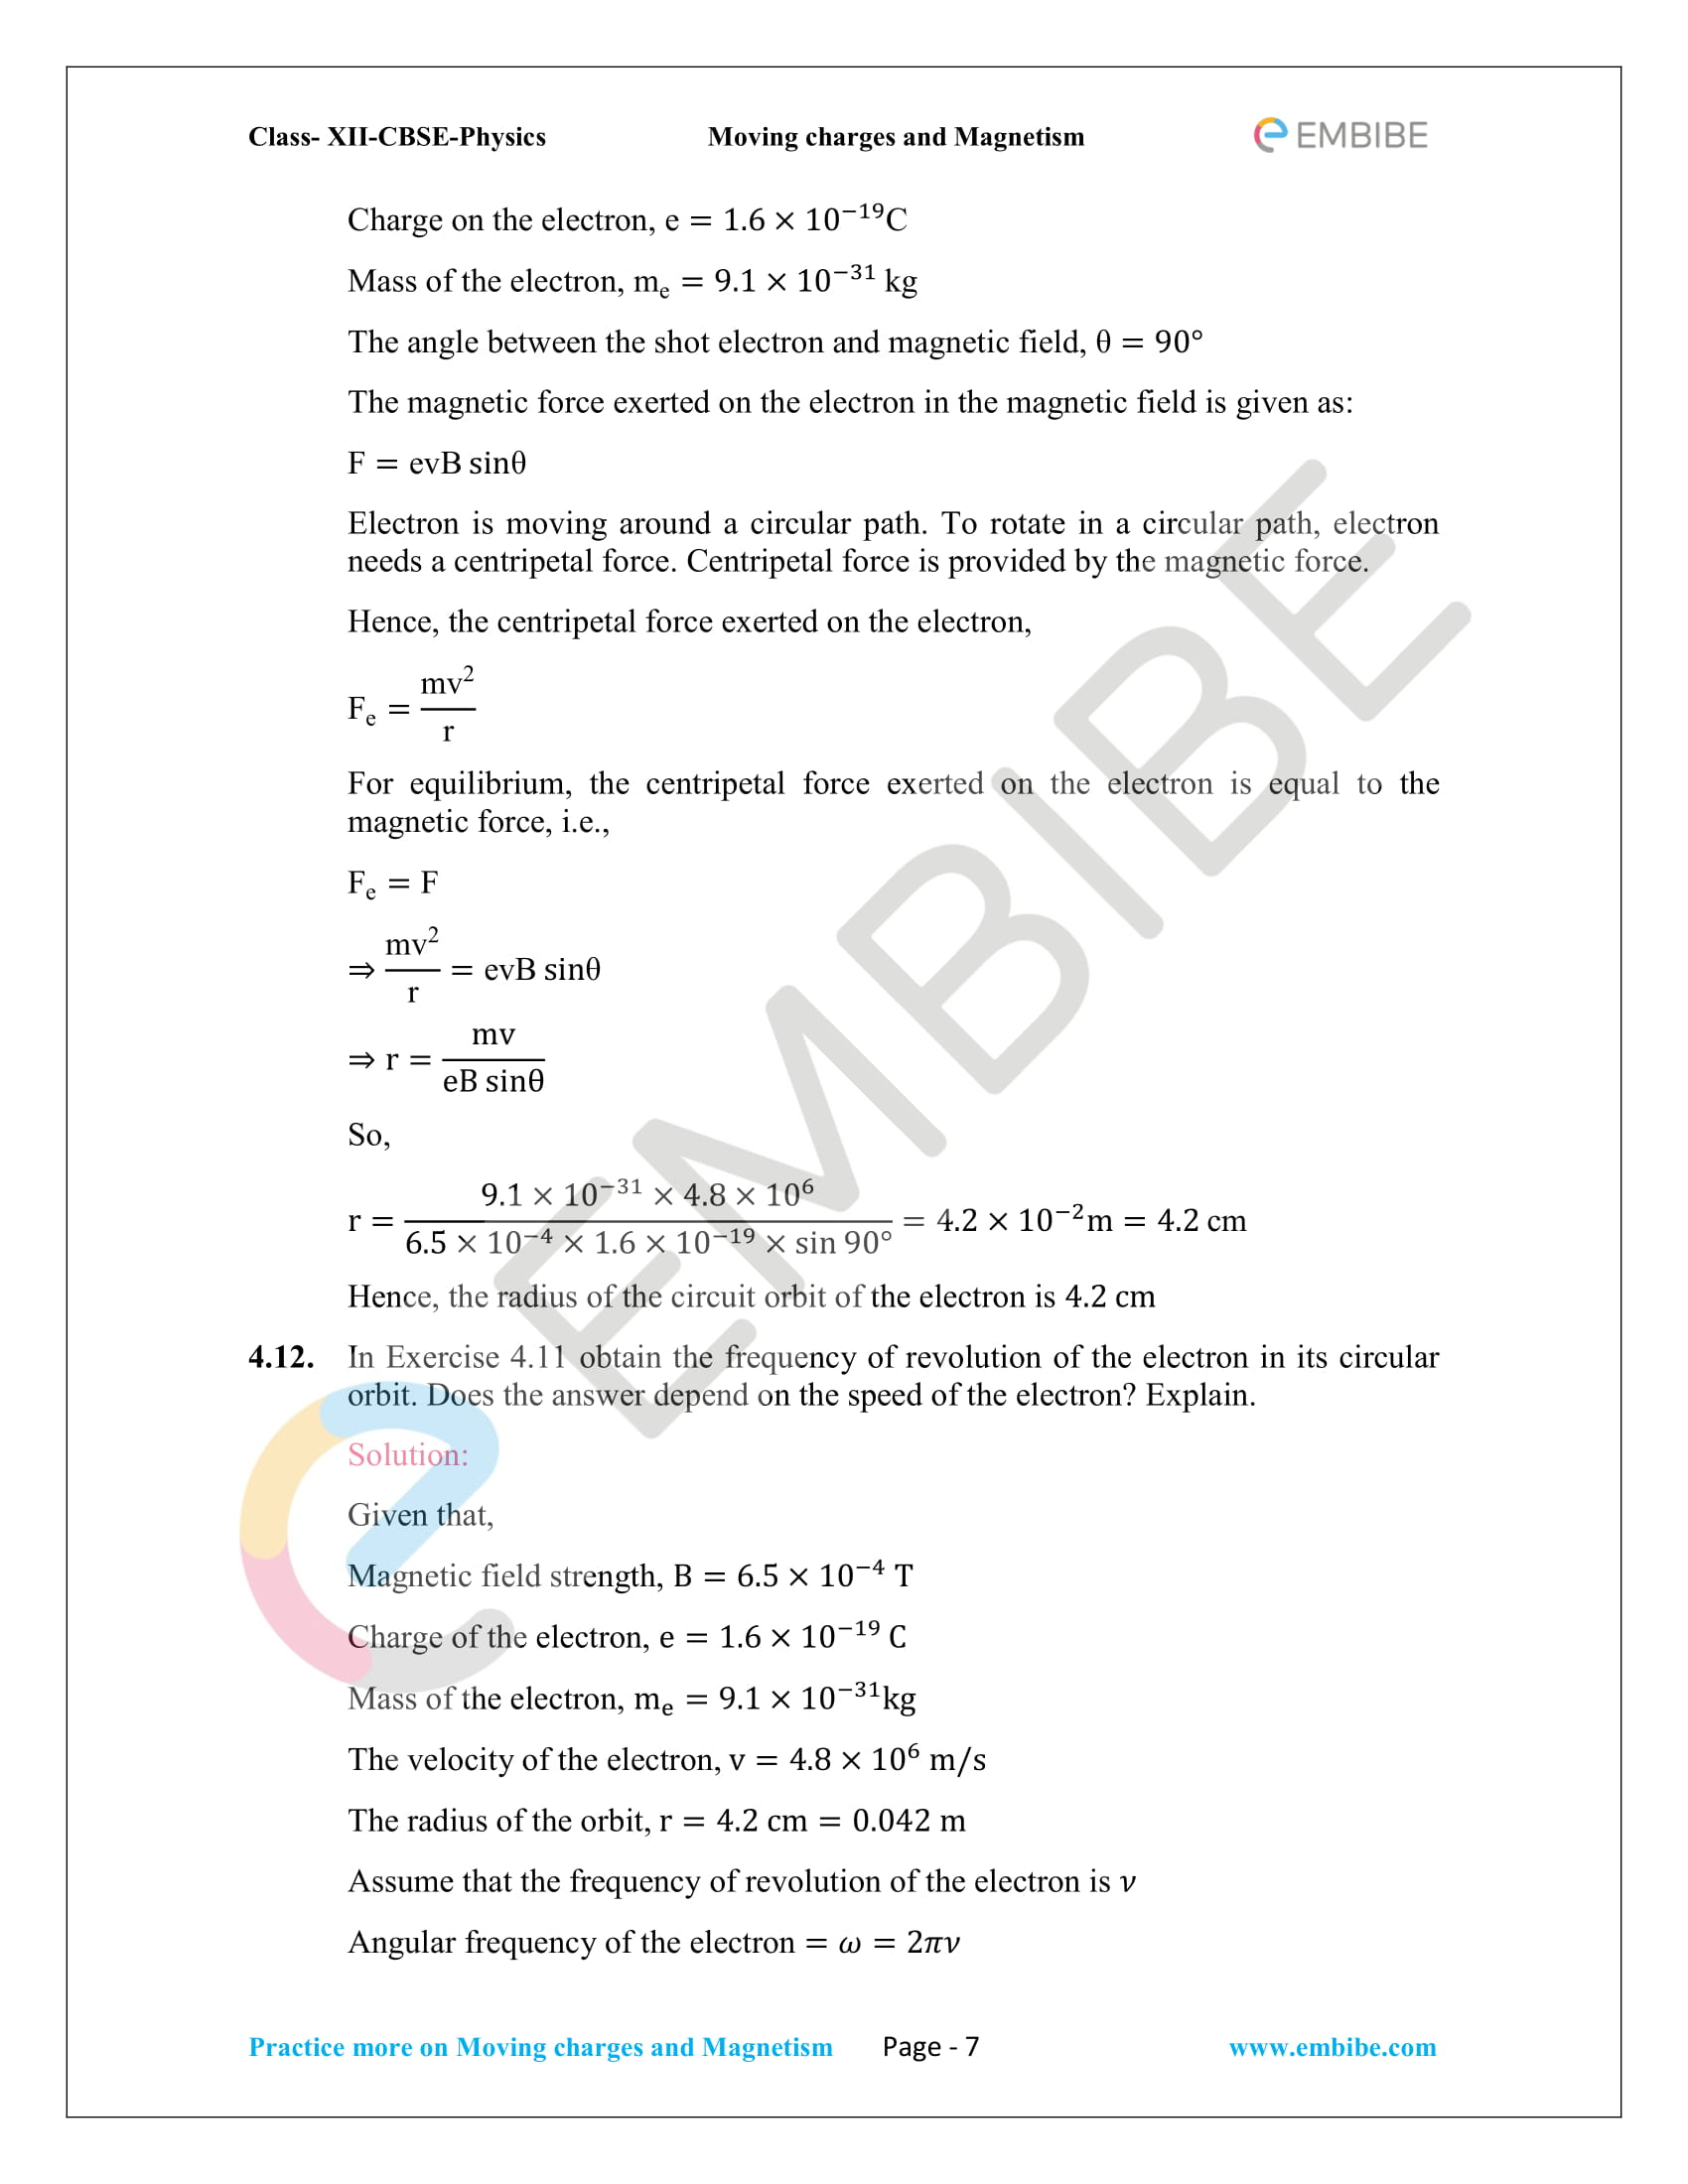 NCERT_Grade 12_Physics_Ch_04_Moving Charges and Magnetism-07